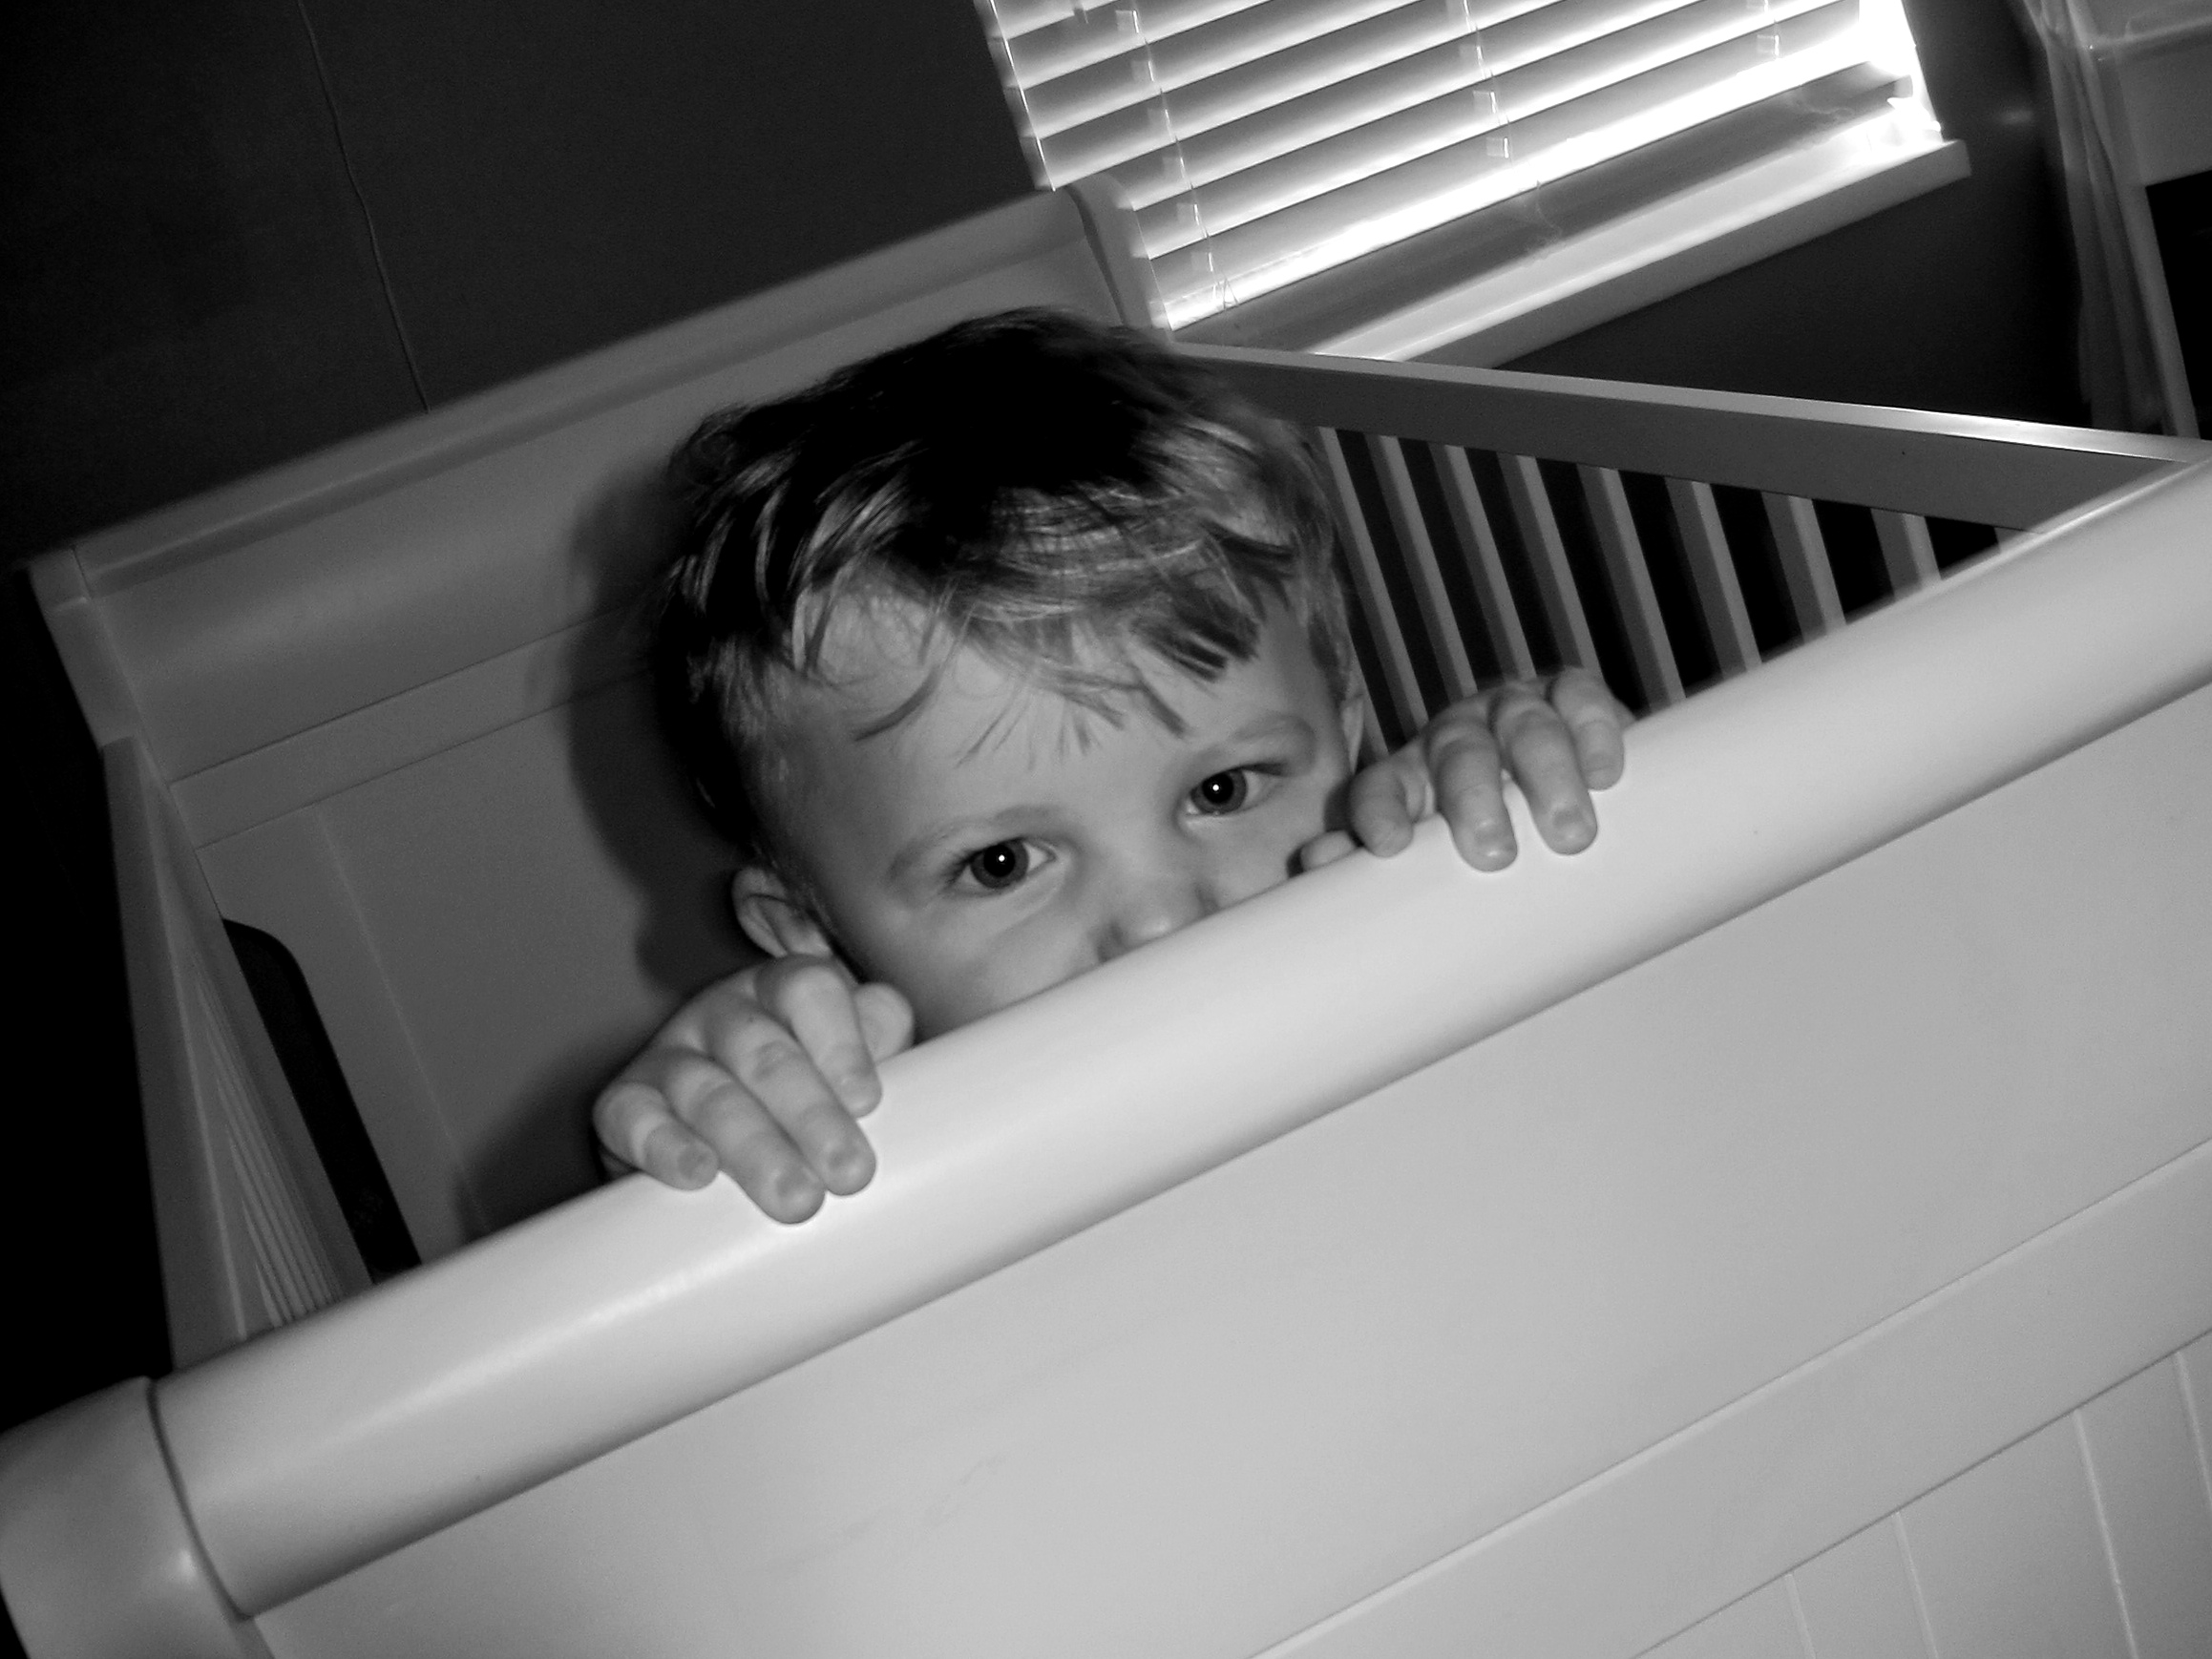 carter peeking